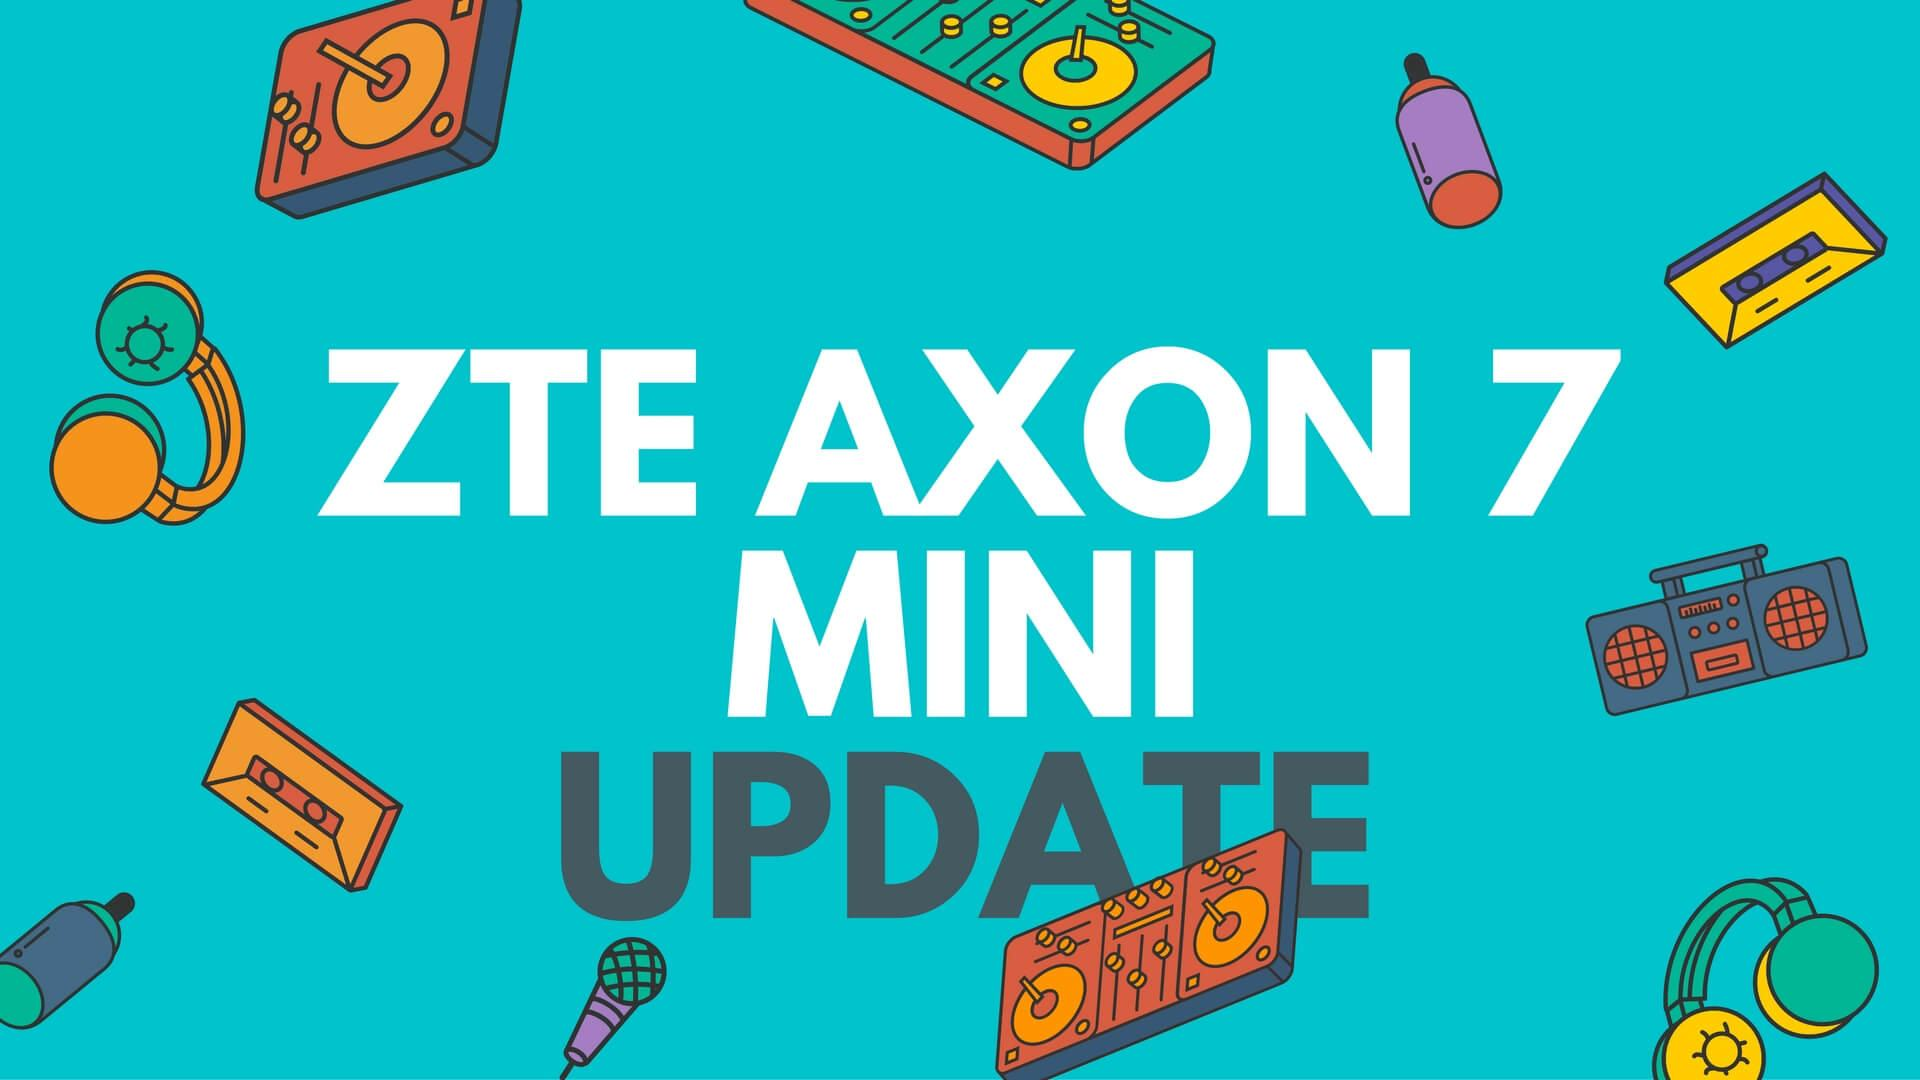 non-removable 2700mAh zte axon 7 mini nougat feel